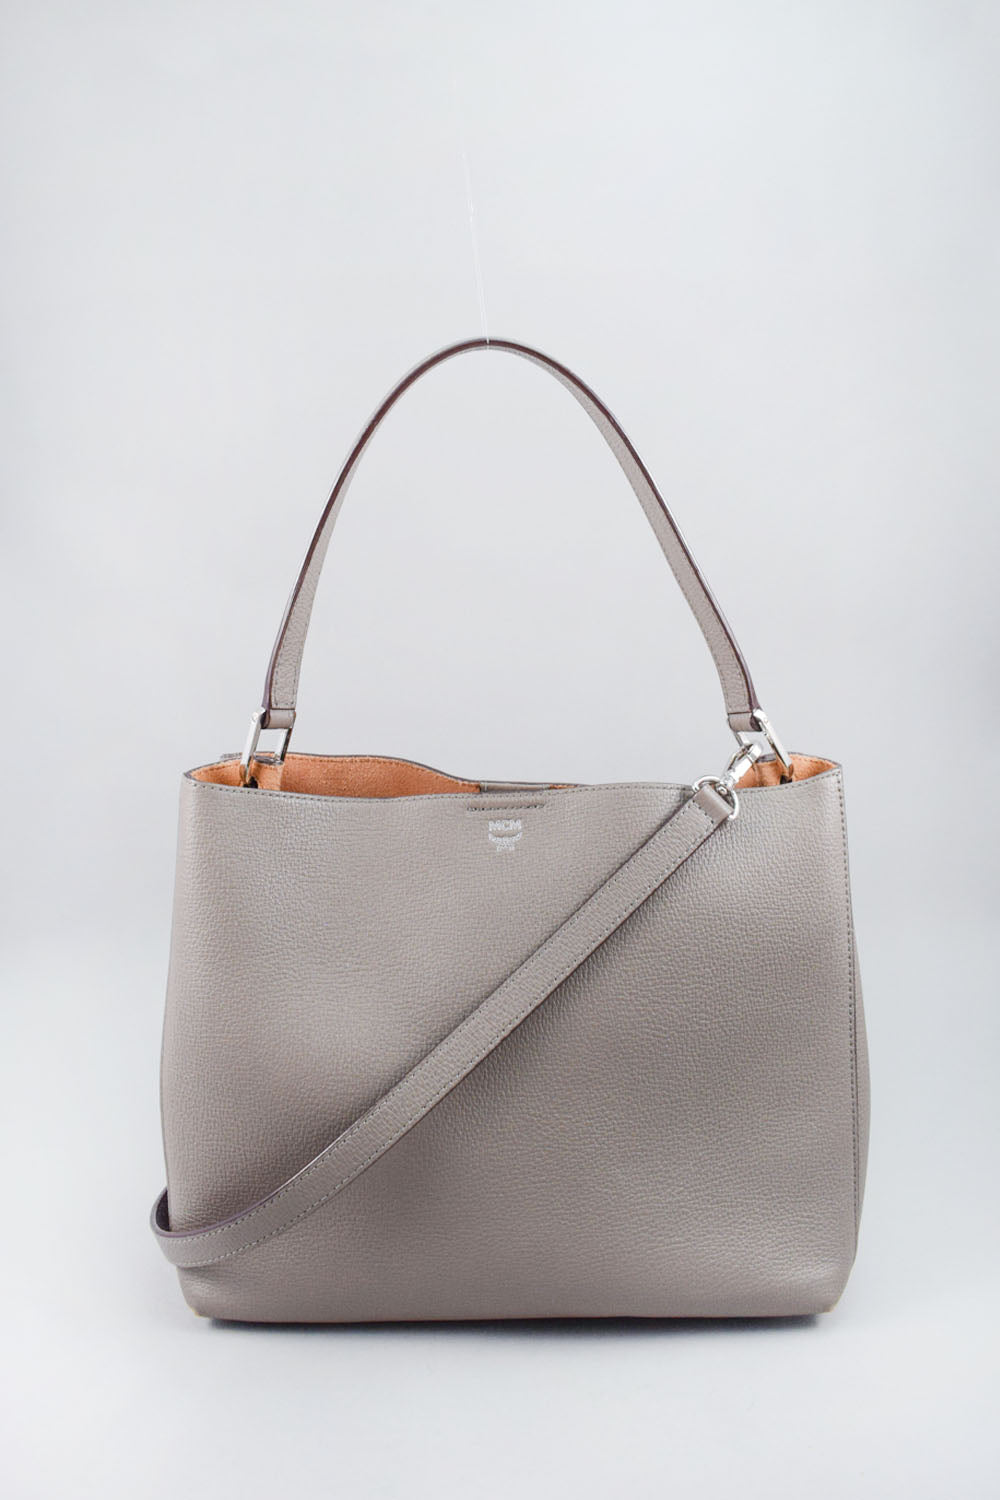 MCM Grey Creta Y Sarah Medium Leather Hobo Bag